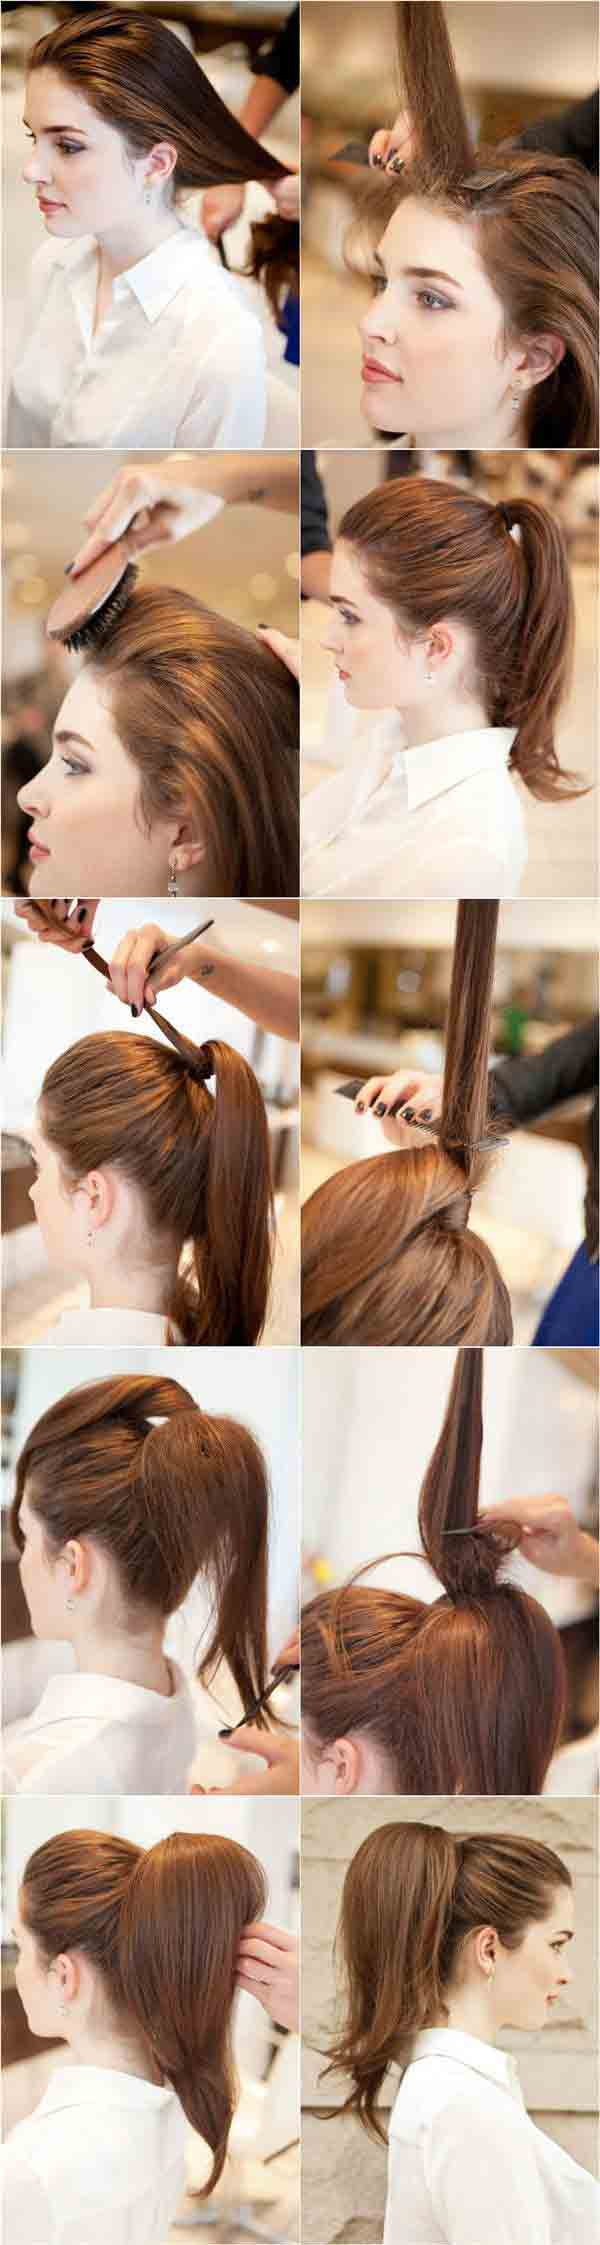 Hair tease hair style step by step tutorial